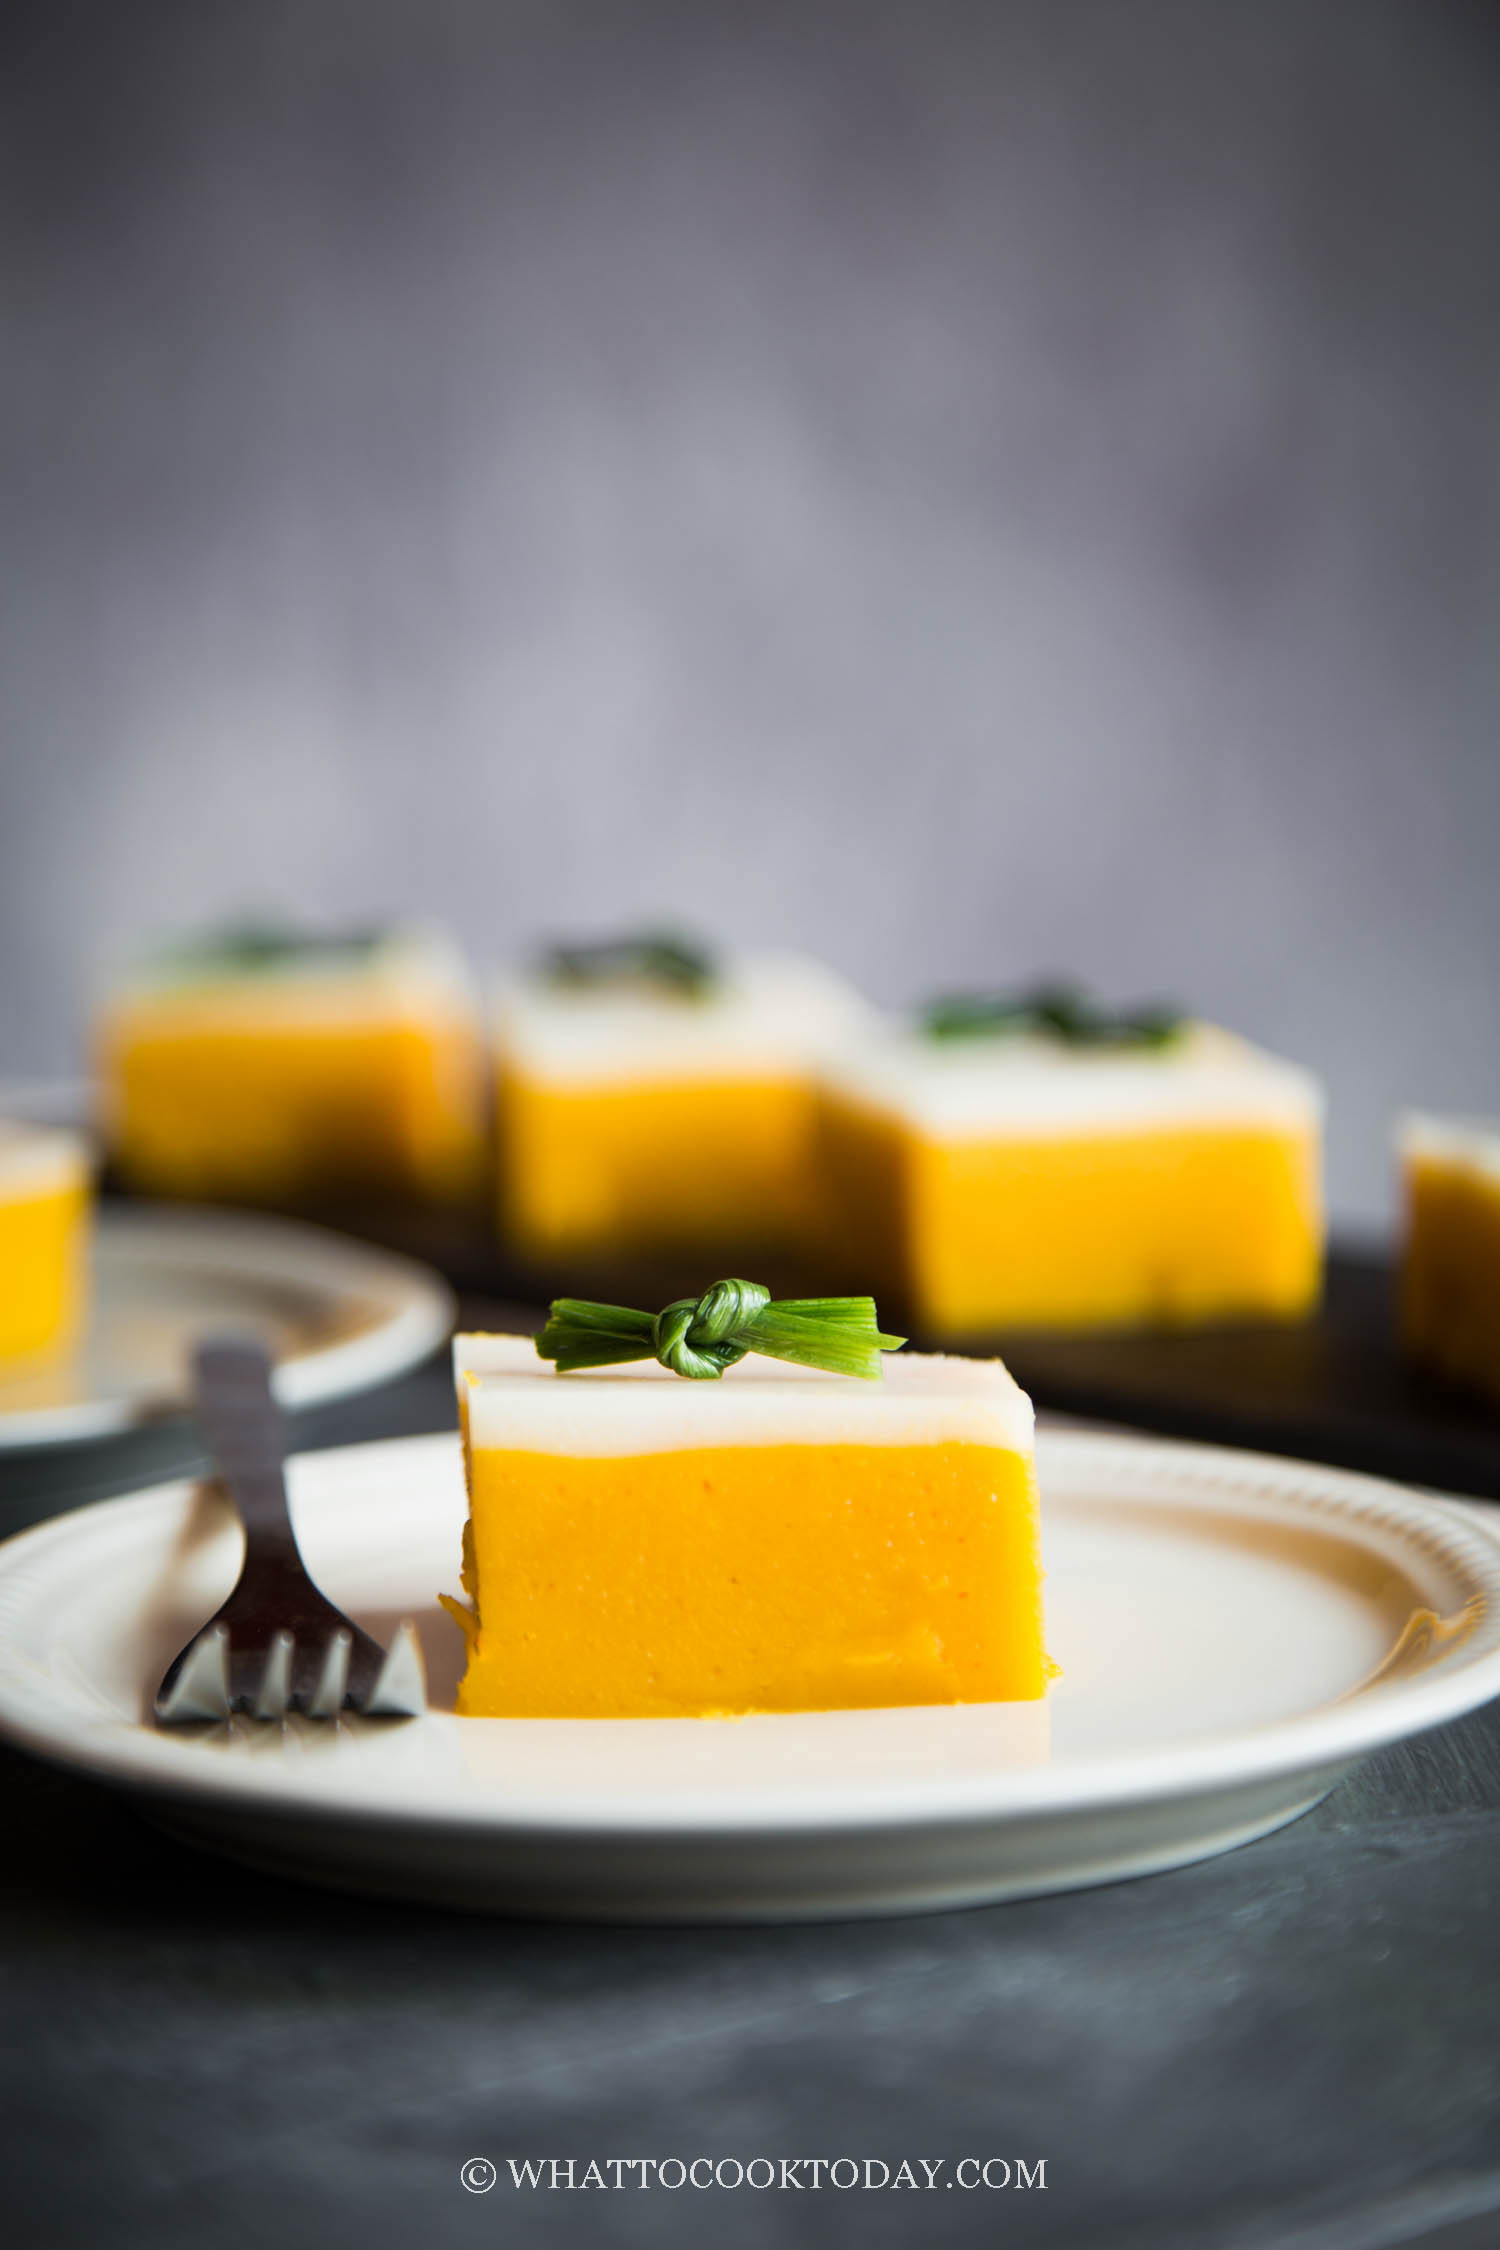 Two-Layer Sweet Potato Cake (Kue Talam Ubi)